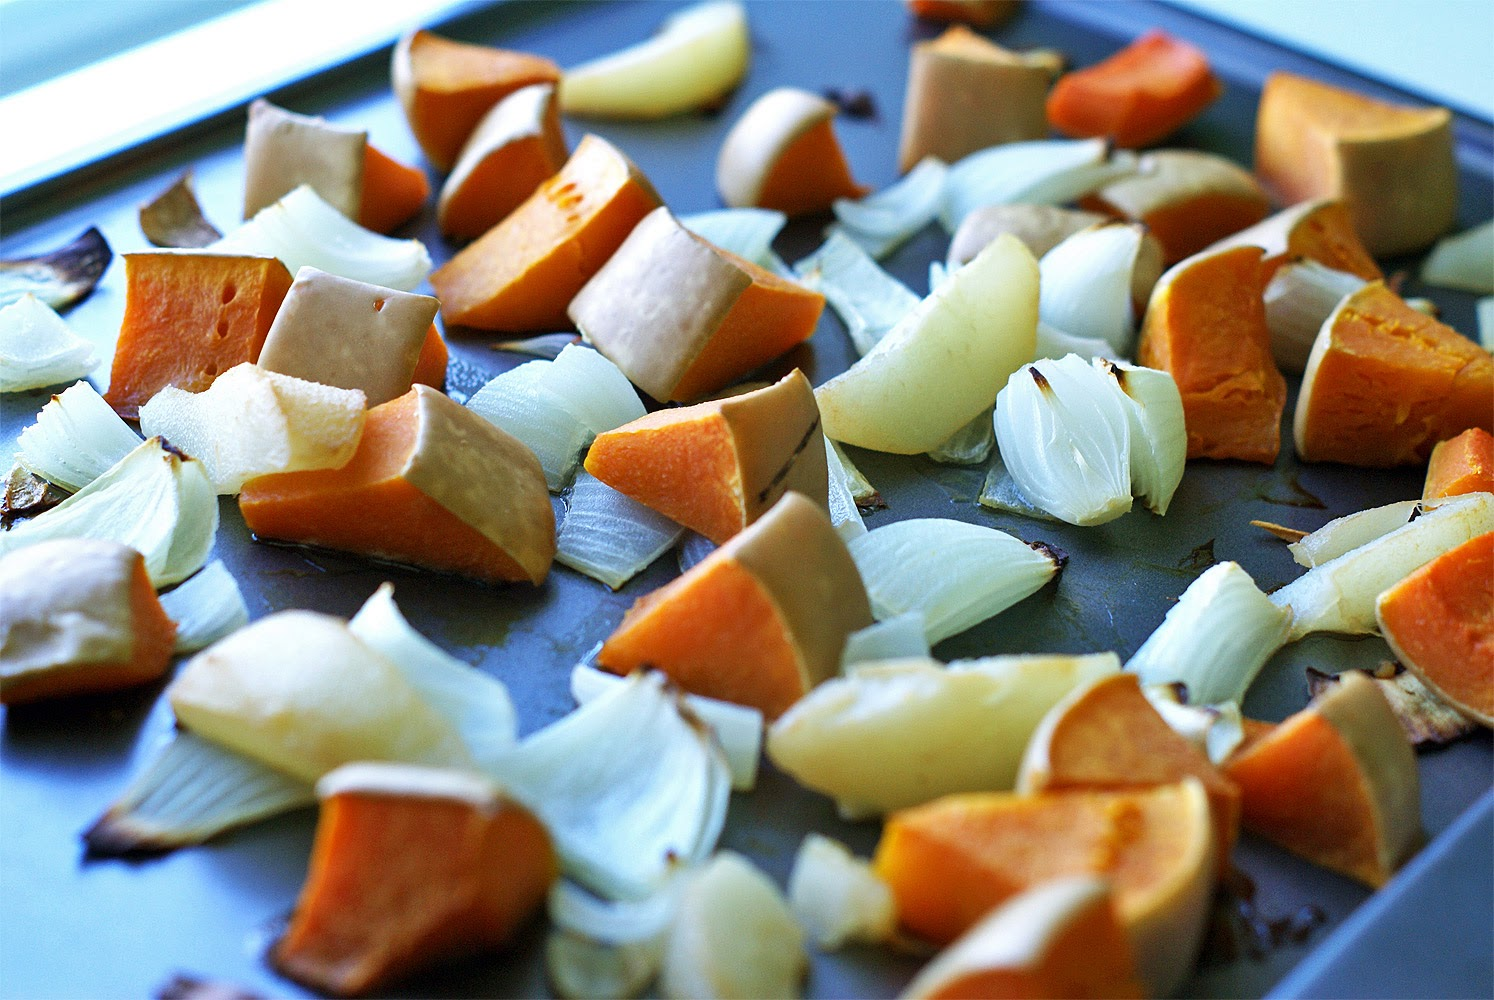 Oven-roasted vegetables make a delicious curried butternut squash and pear soup.